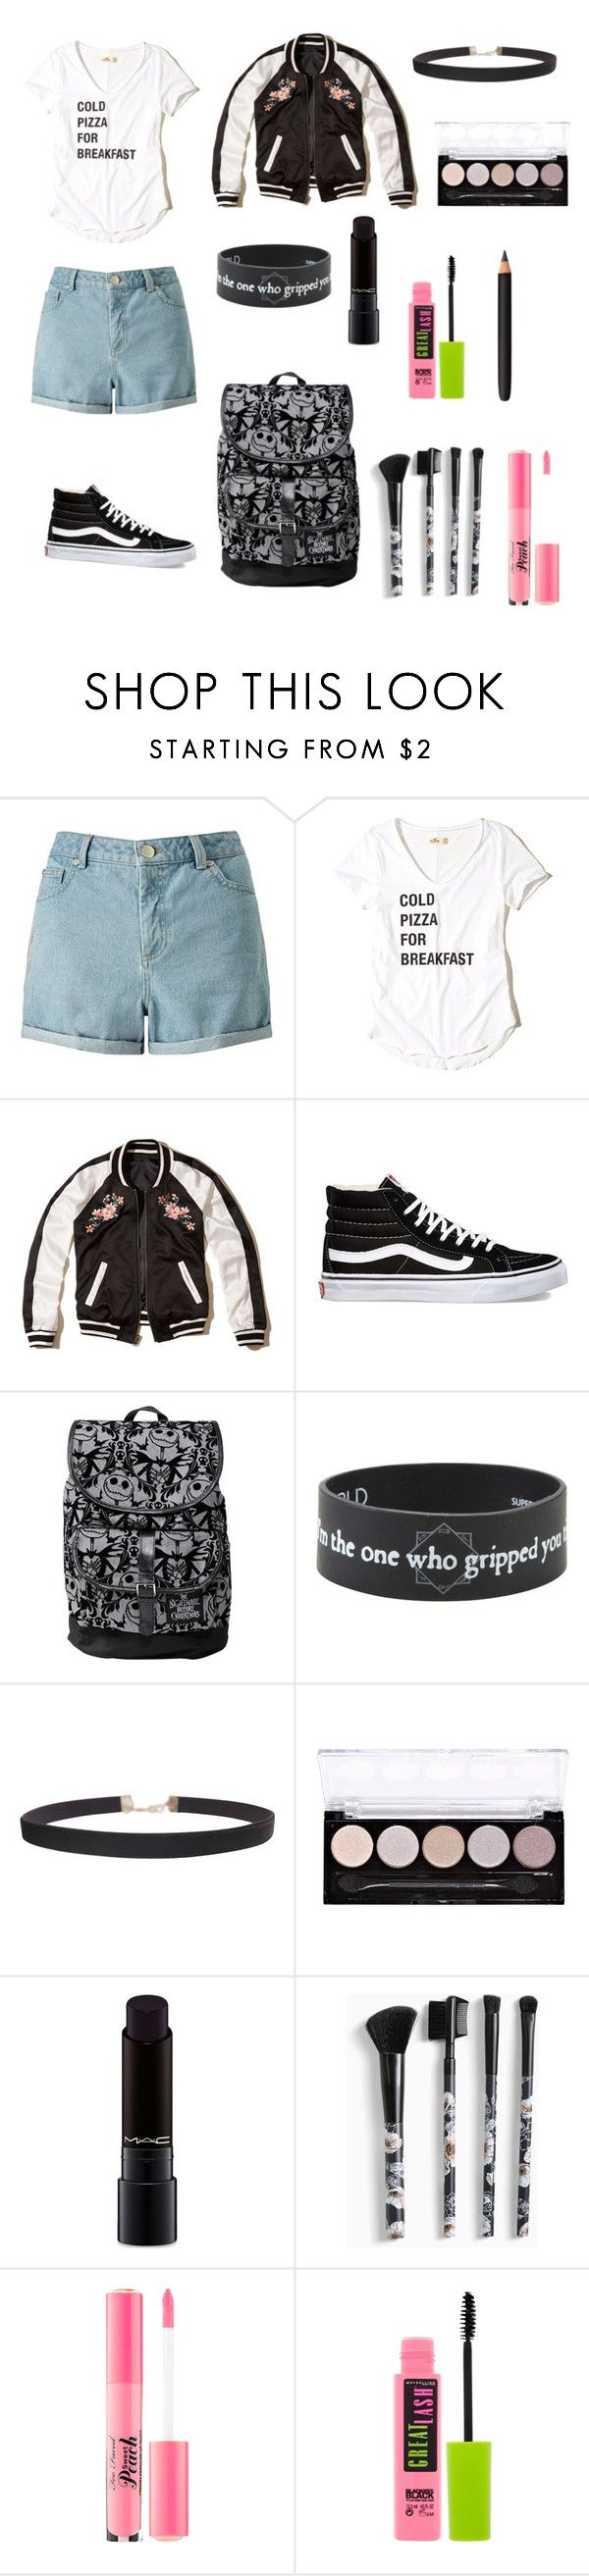 """""""Cold pizza"""" by me1ody ❤ liked on Polyvore featuring Miss Selfridge, Hollister Co., Vans, Disney, Humble Chic, L.A. Colors, MAC Cosmetics, Torrid, Too Faced Cosmetics and Maybelline"""